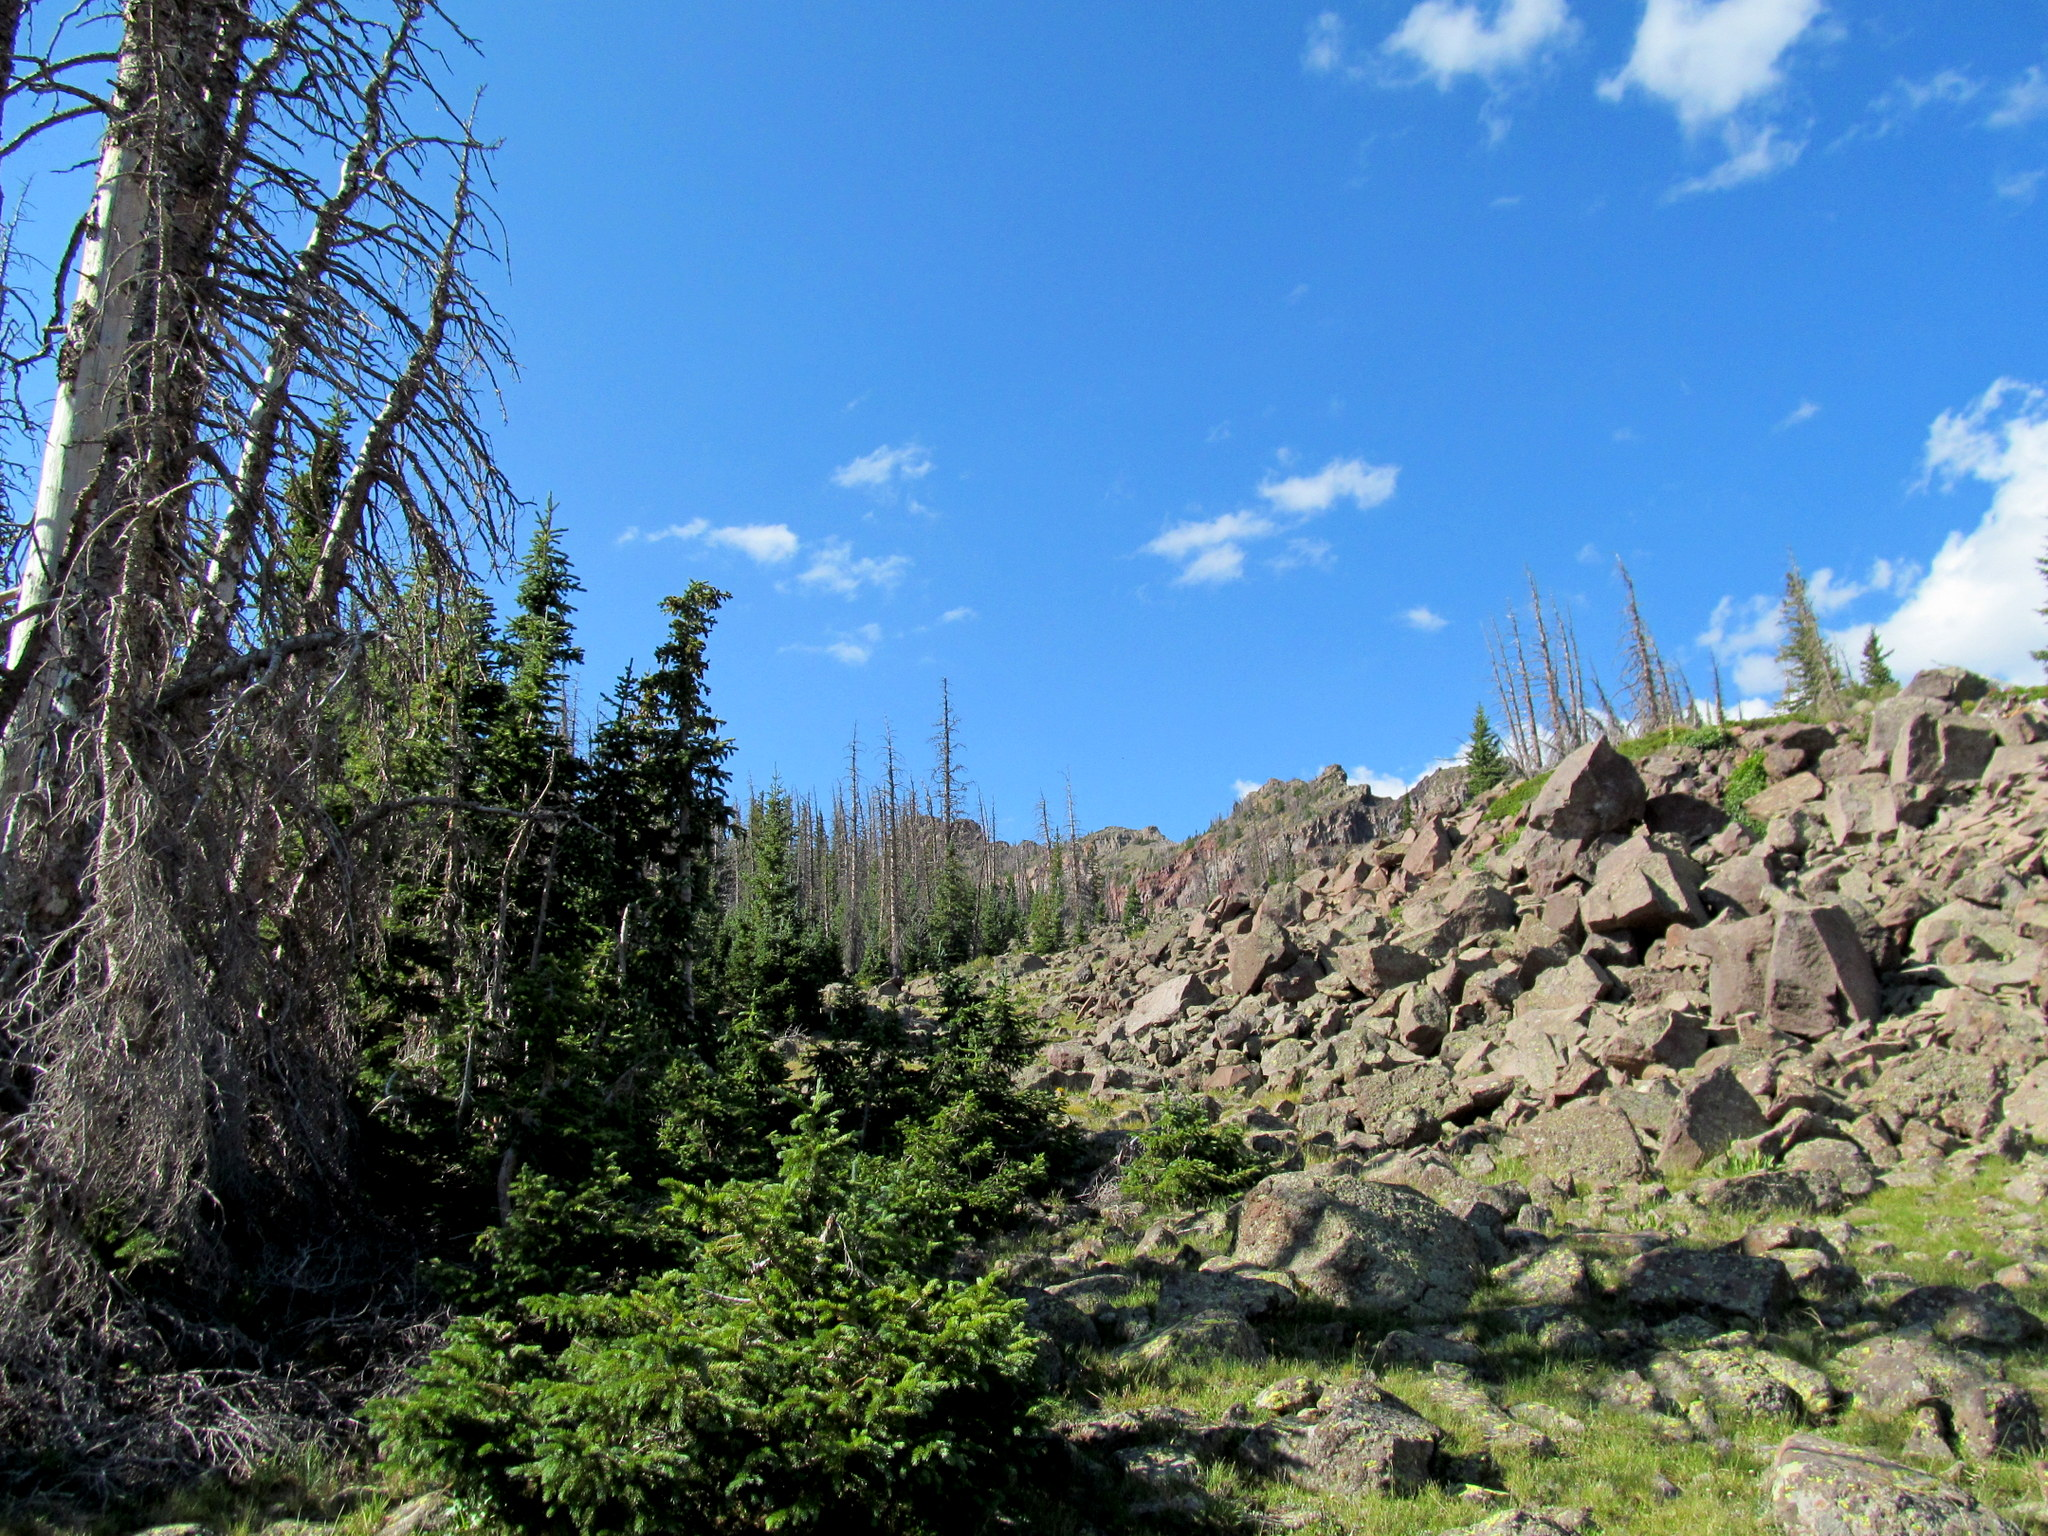 Photo: End of the logging road, beginning of the boulder hopping and bushwhacking